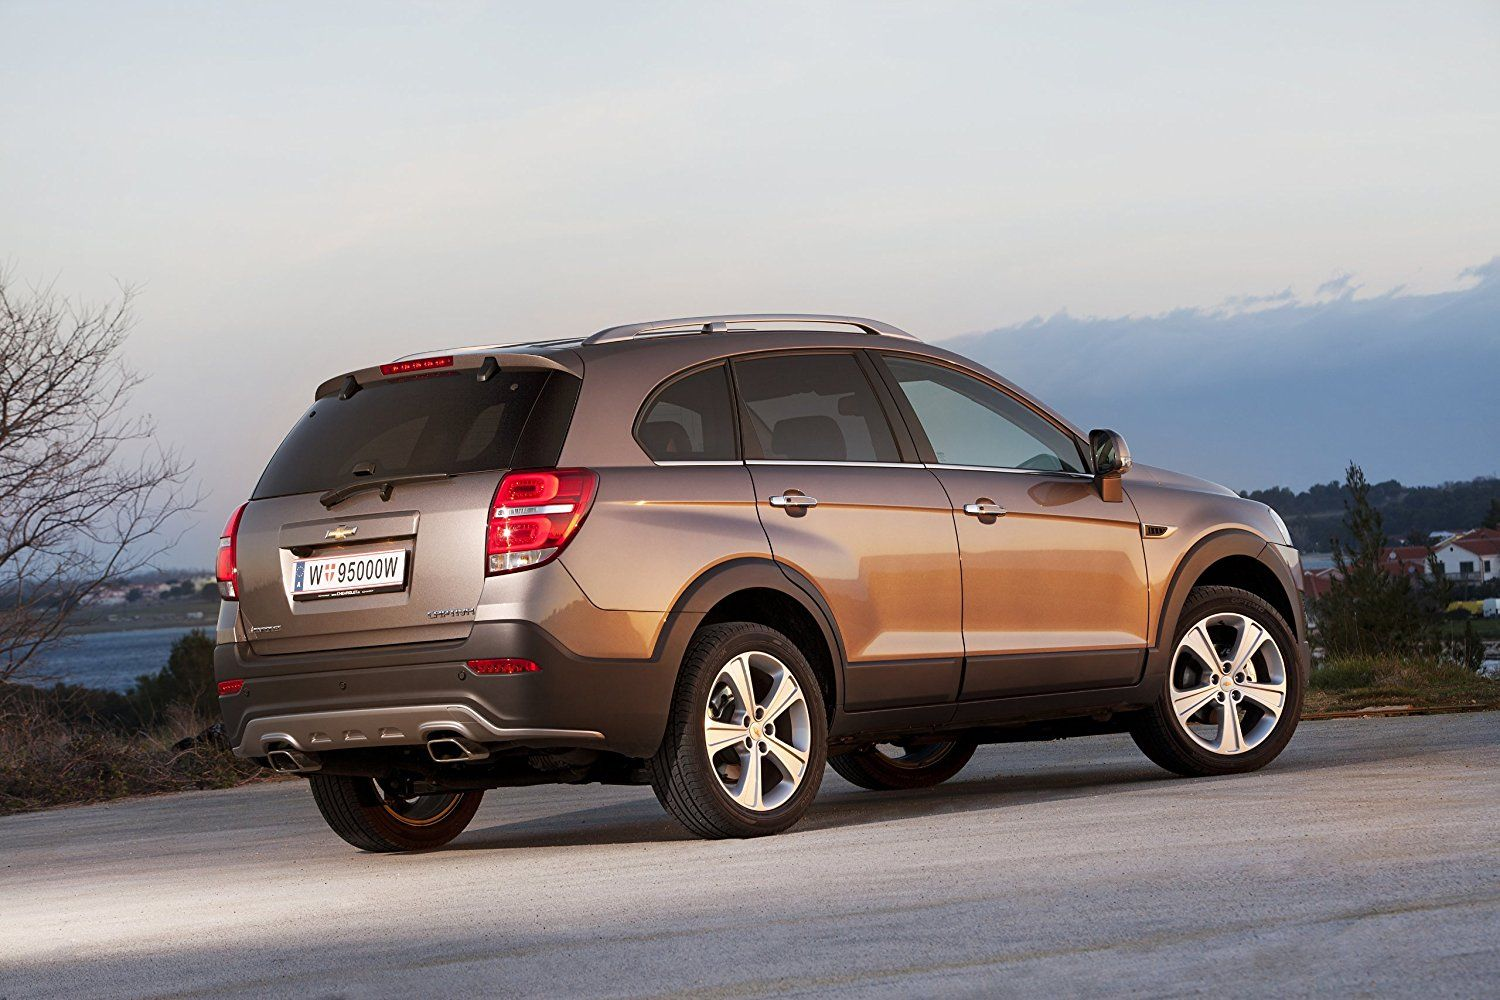 25 best chevrolet captiva 2013 ideas on pinterest chevrolet captiva chevrolet captiva sport and 2012 chrysler 300